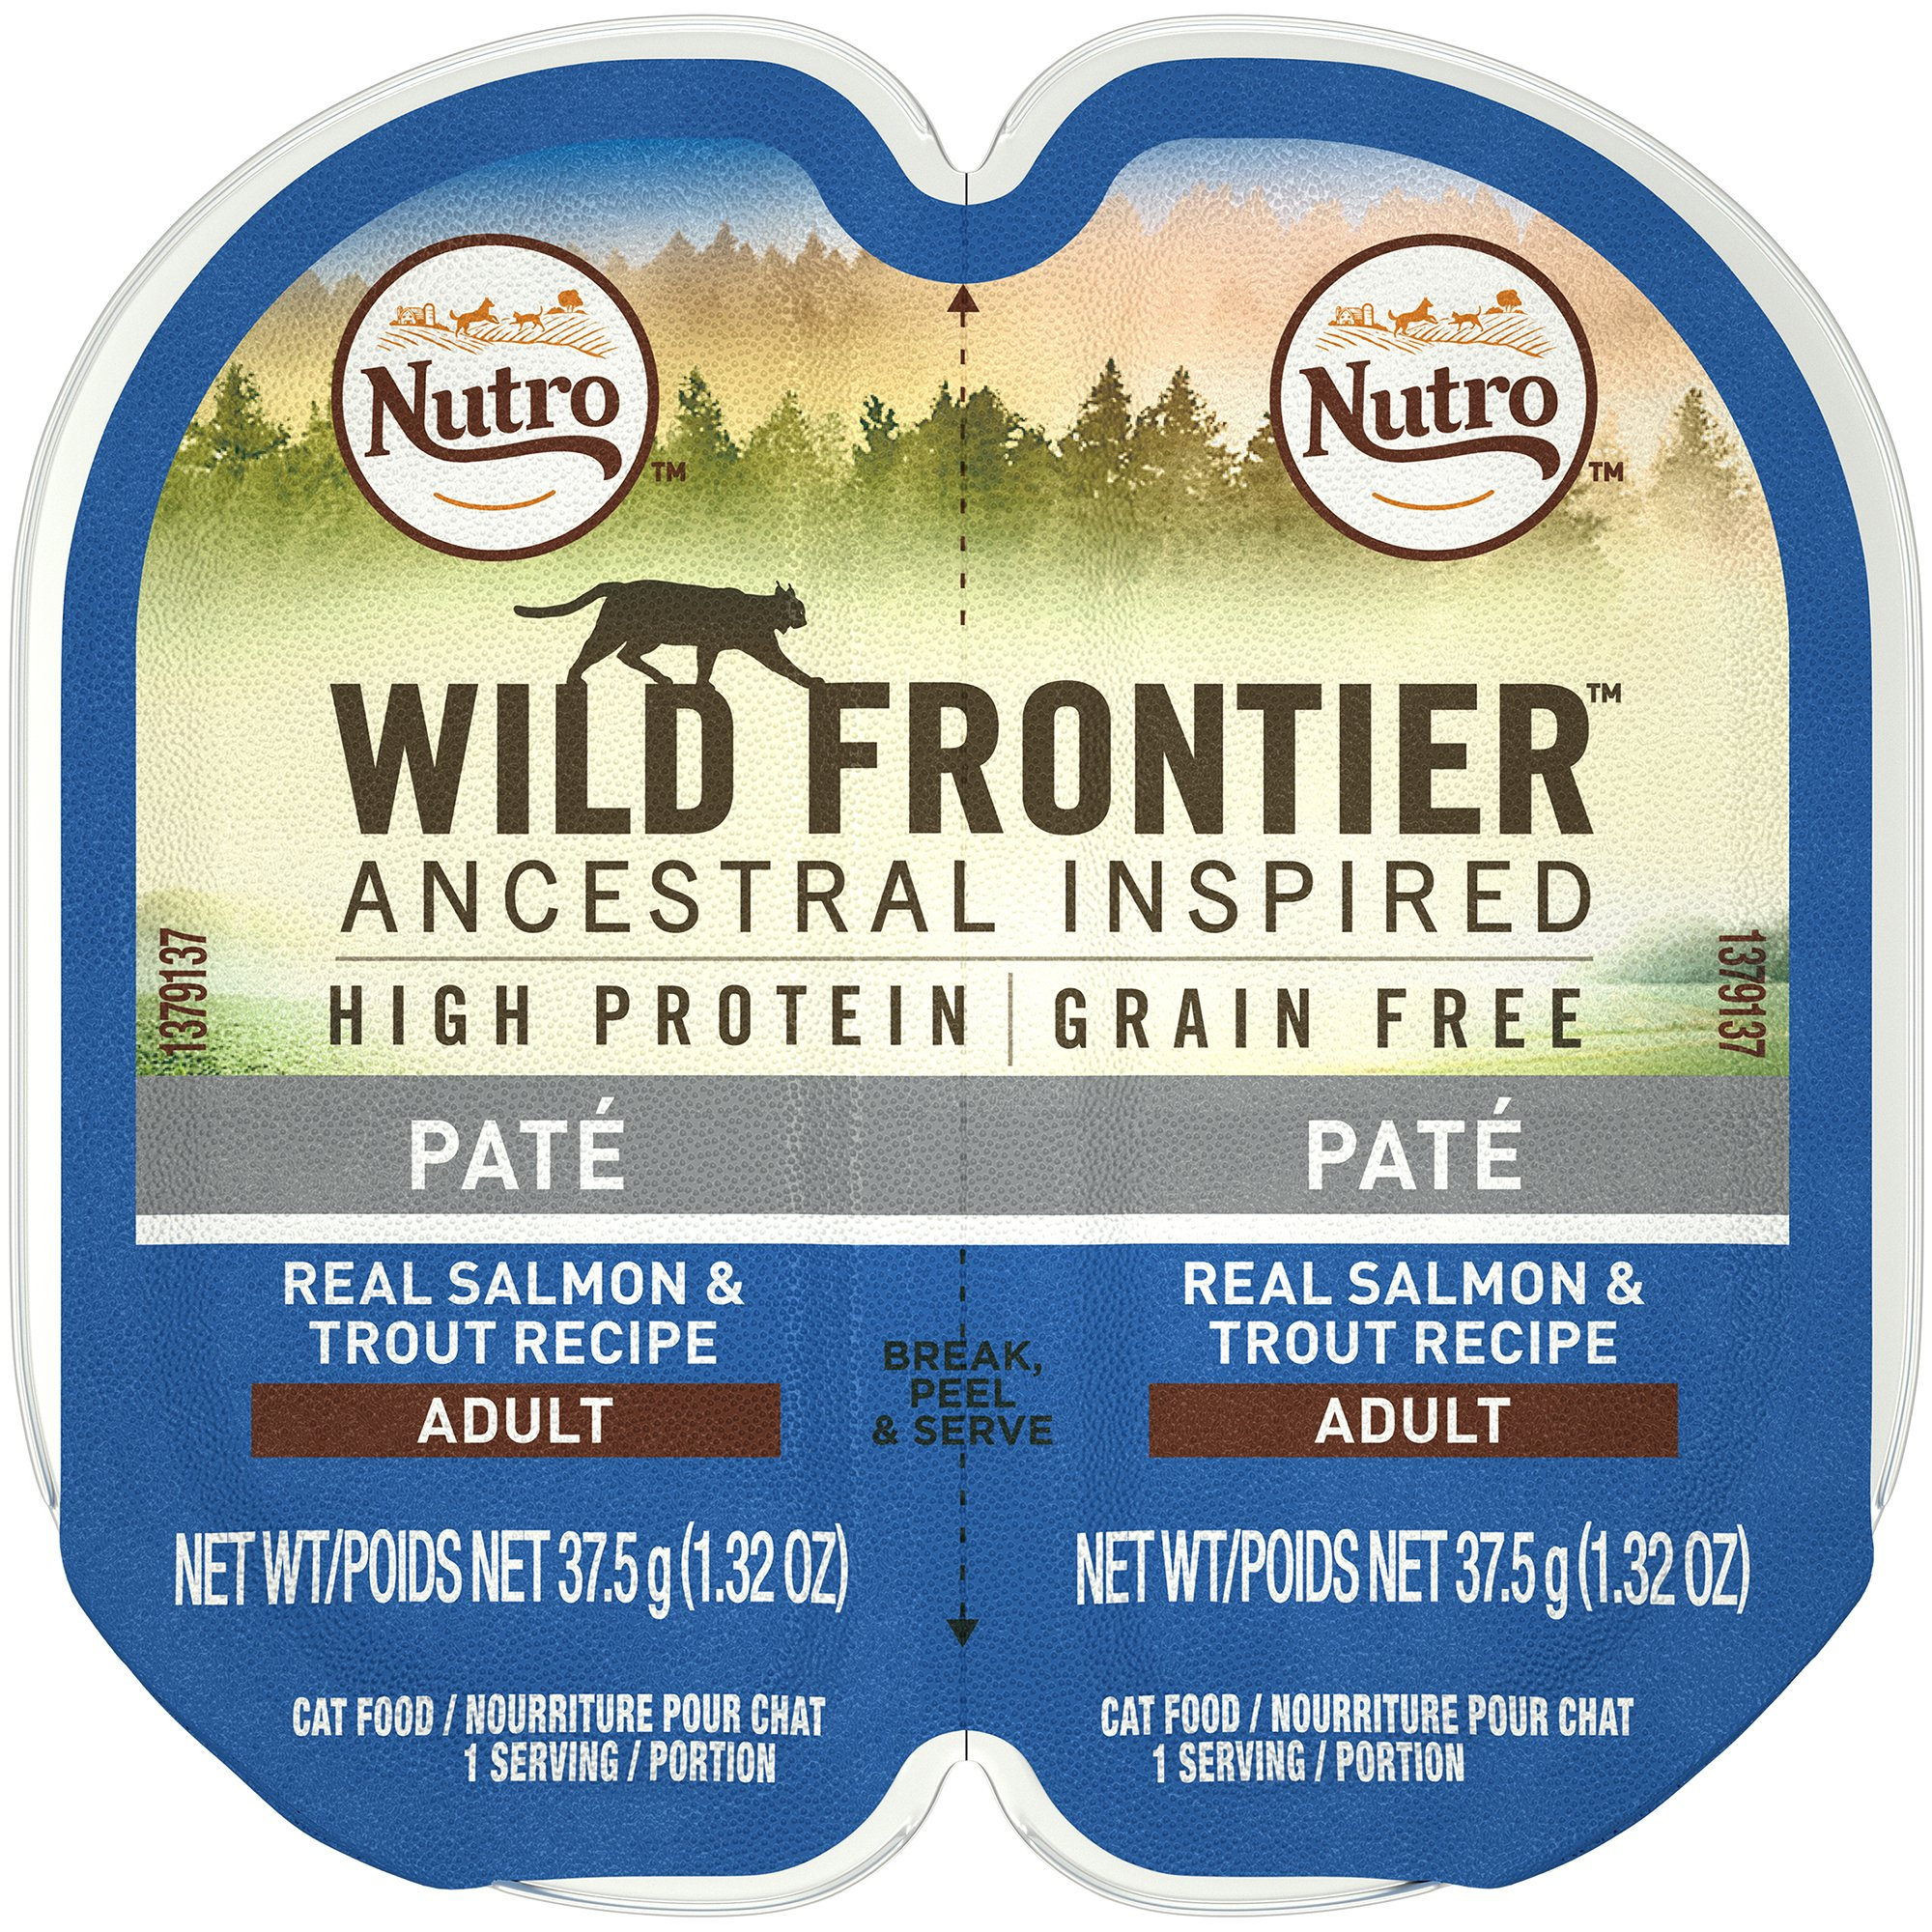 Nutro WILD FRONTIER High Protein Grain Free Pate Wet Cat Food, Salmon & Trout, 2.65 oz. (24 Twin Packs)